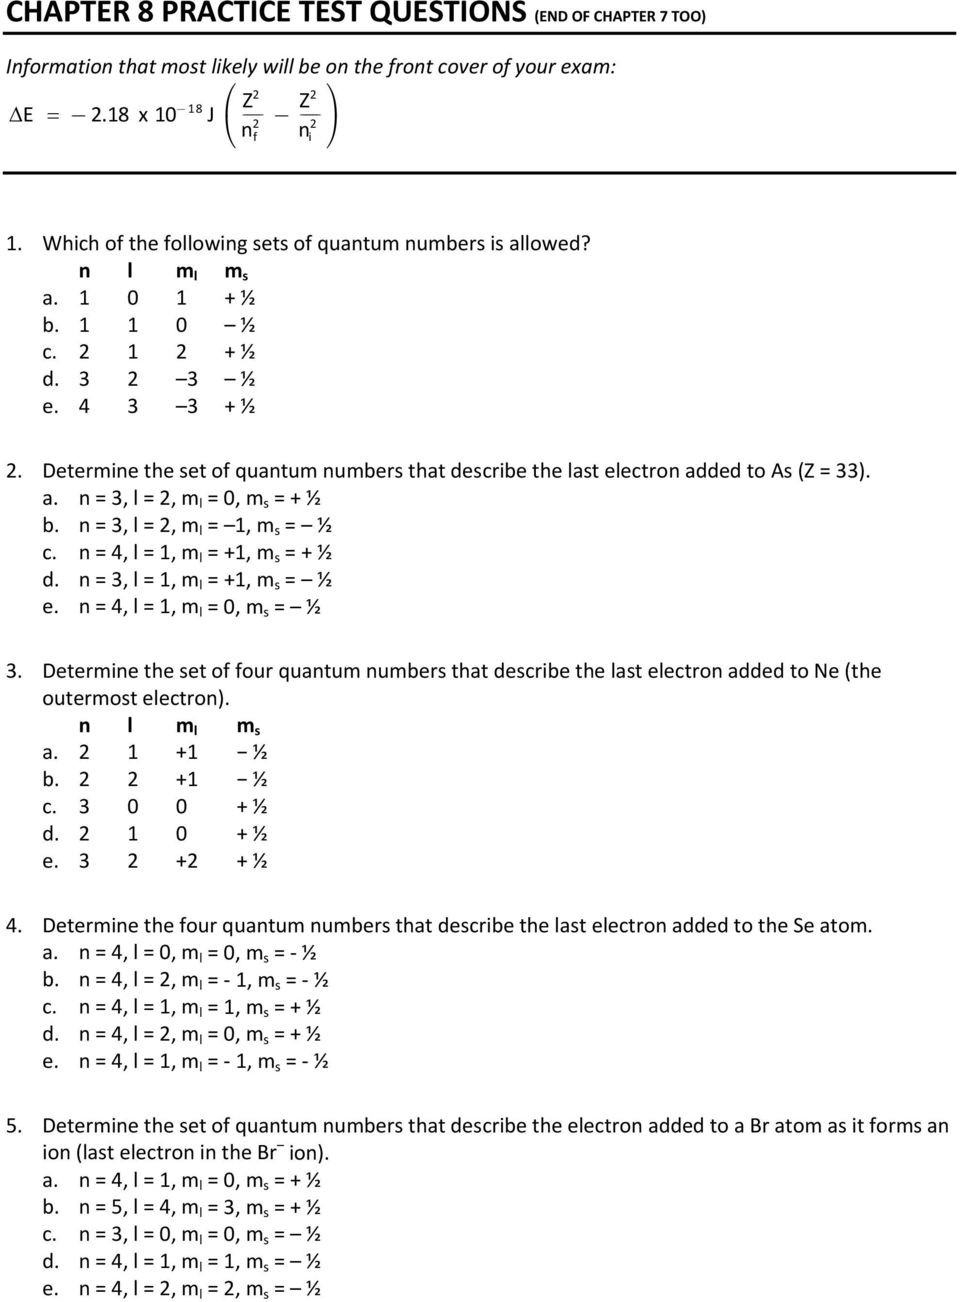 Quantum Numbers Practice Worksheet Chapter 8 Practice Test Questions End Of Chapter 7 too